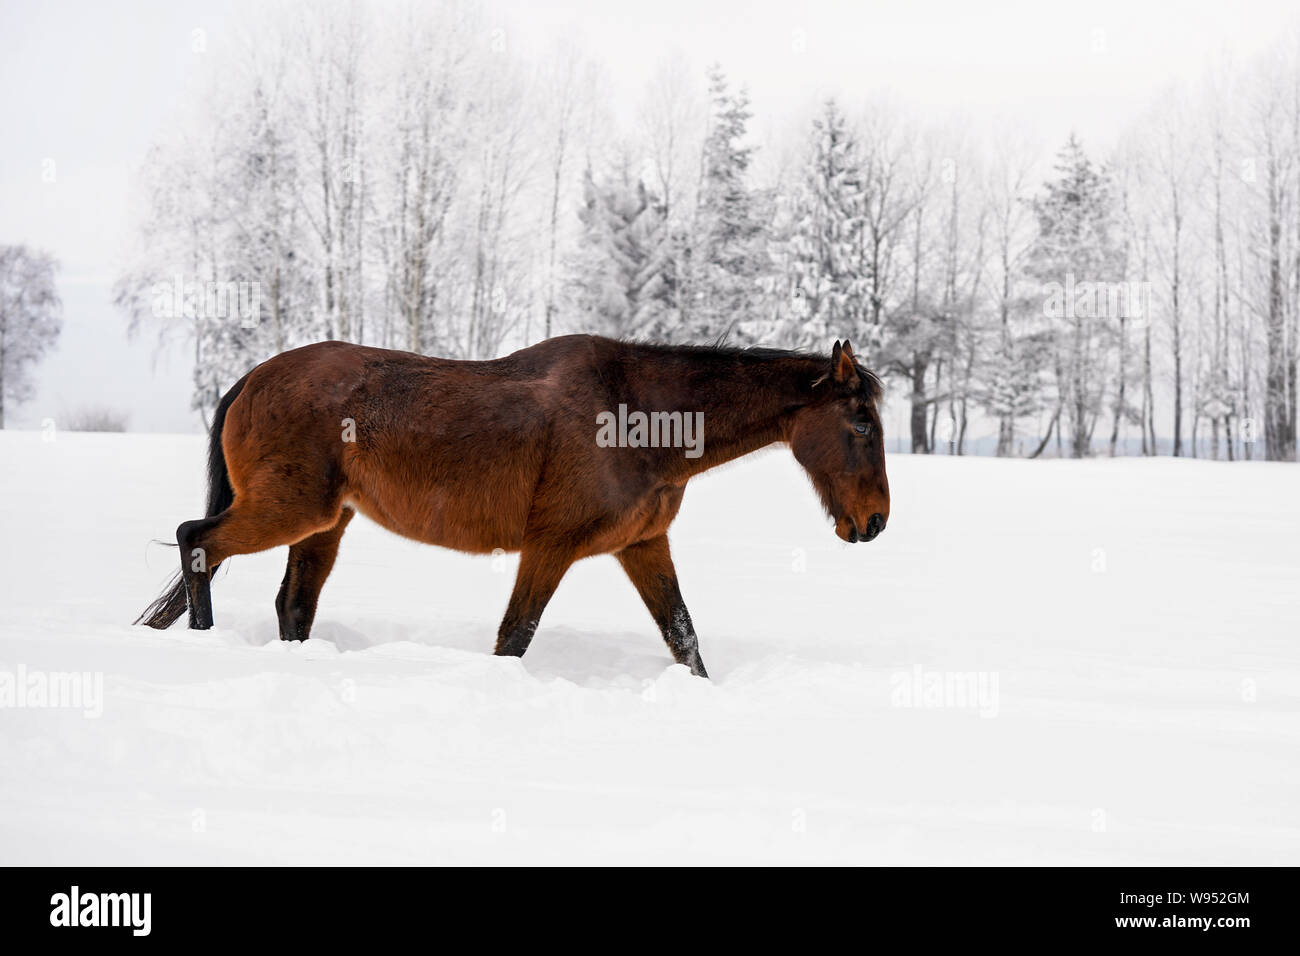 Dark brown horse walks on snow covered field in winter, blurred trees in background, view from side back Stock Photo